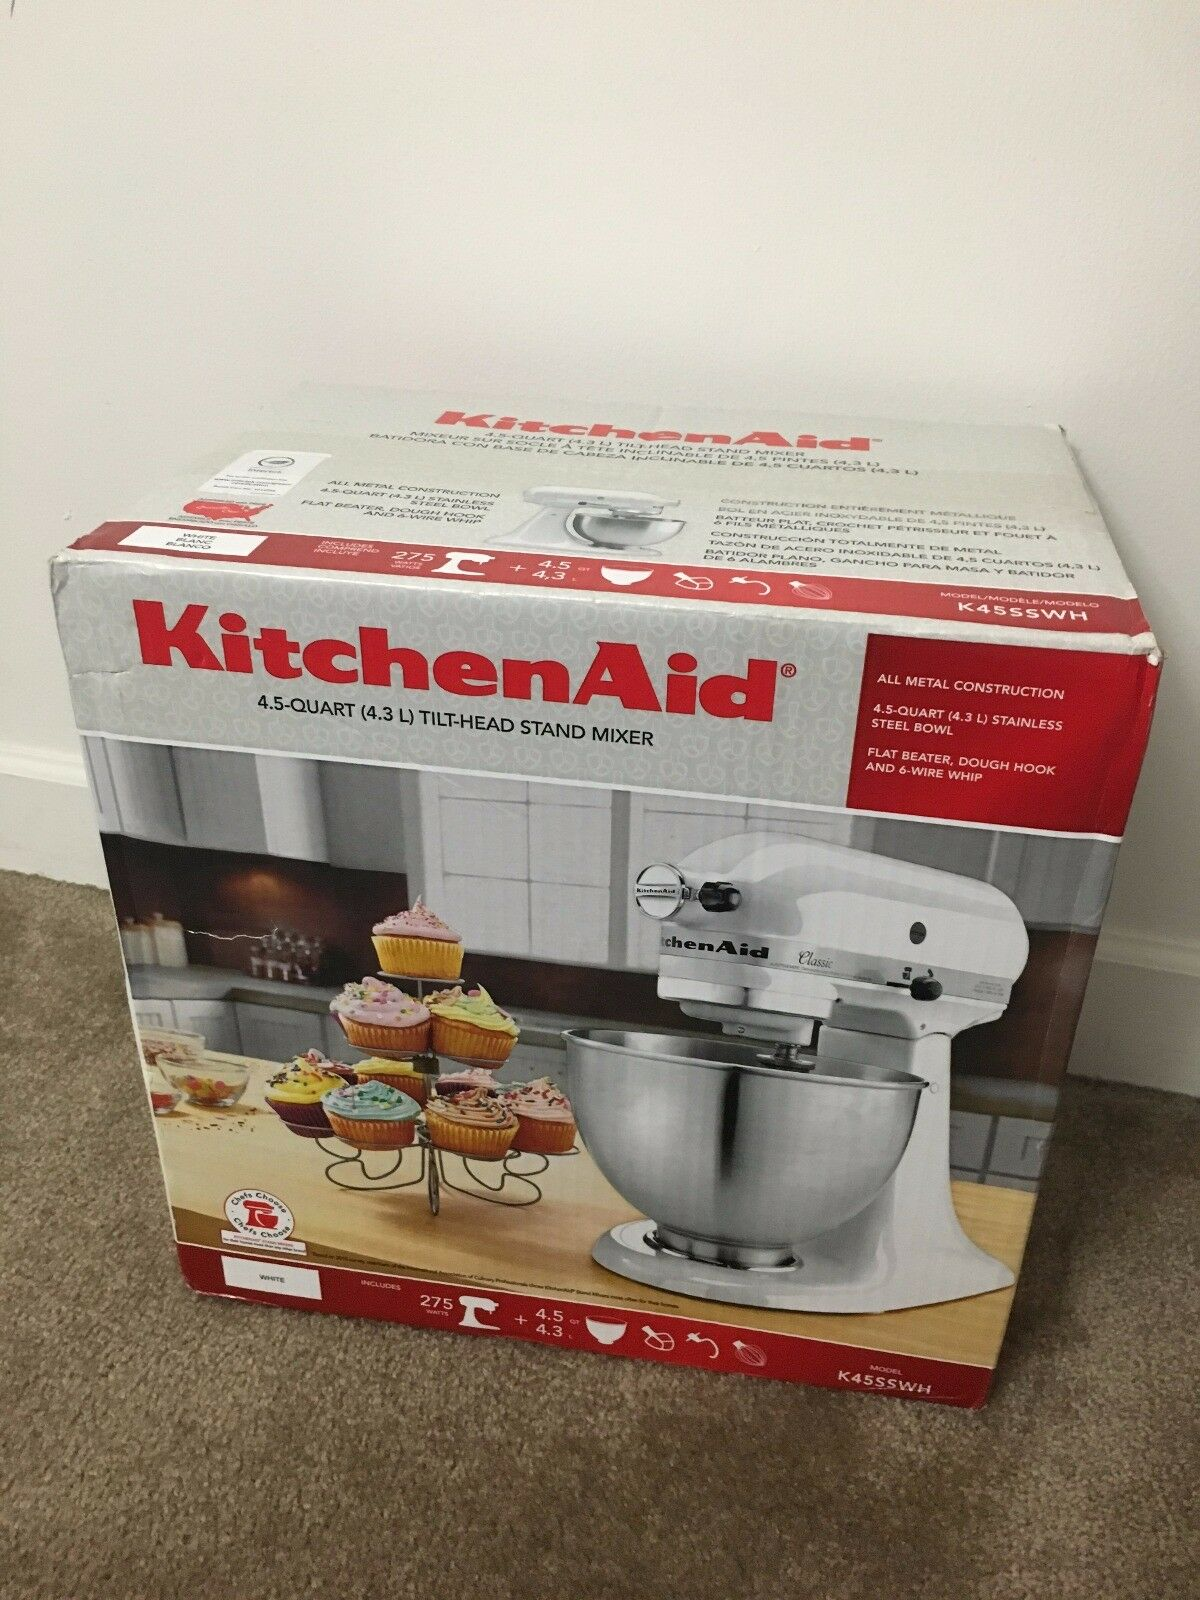 KitchenAid 4.5 Quart Tilt-Head Stand Mixer blanc Model K45SSWH NEW Original Box